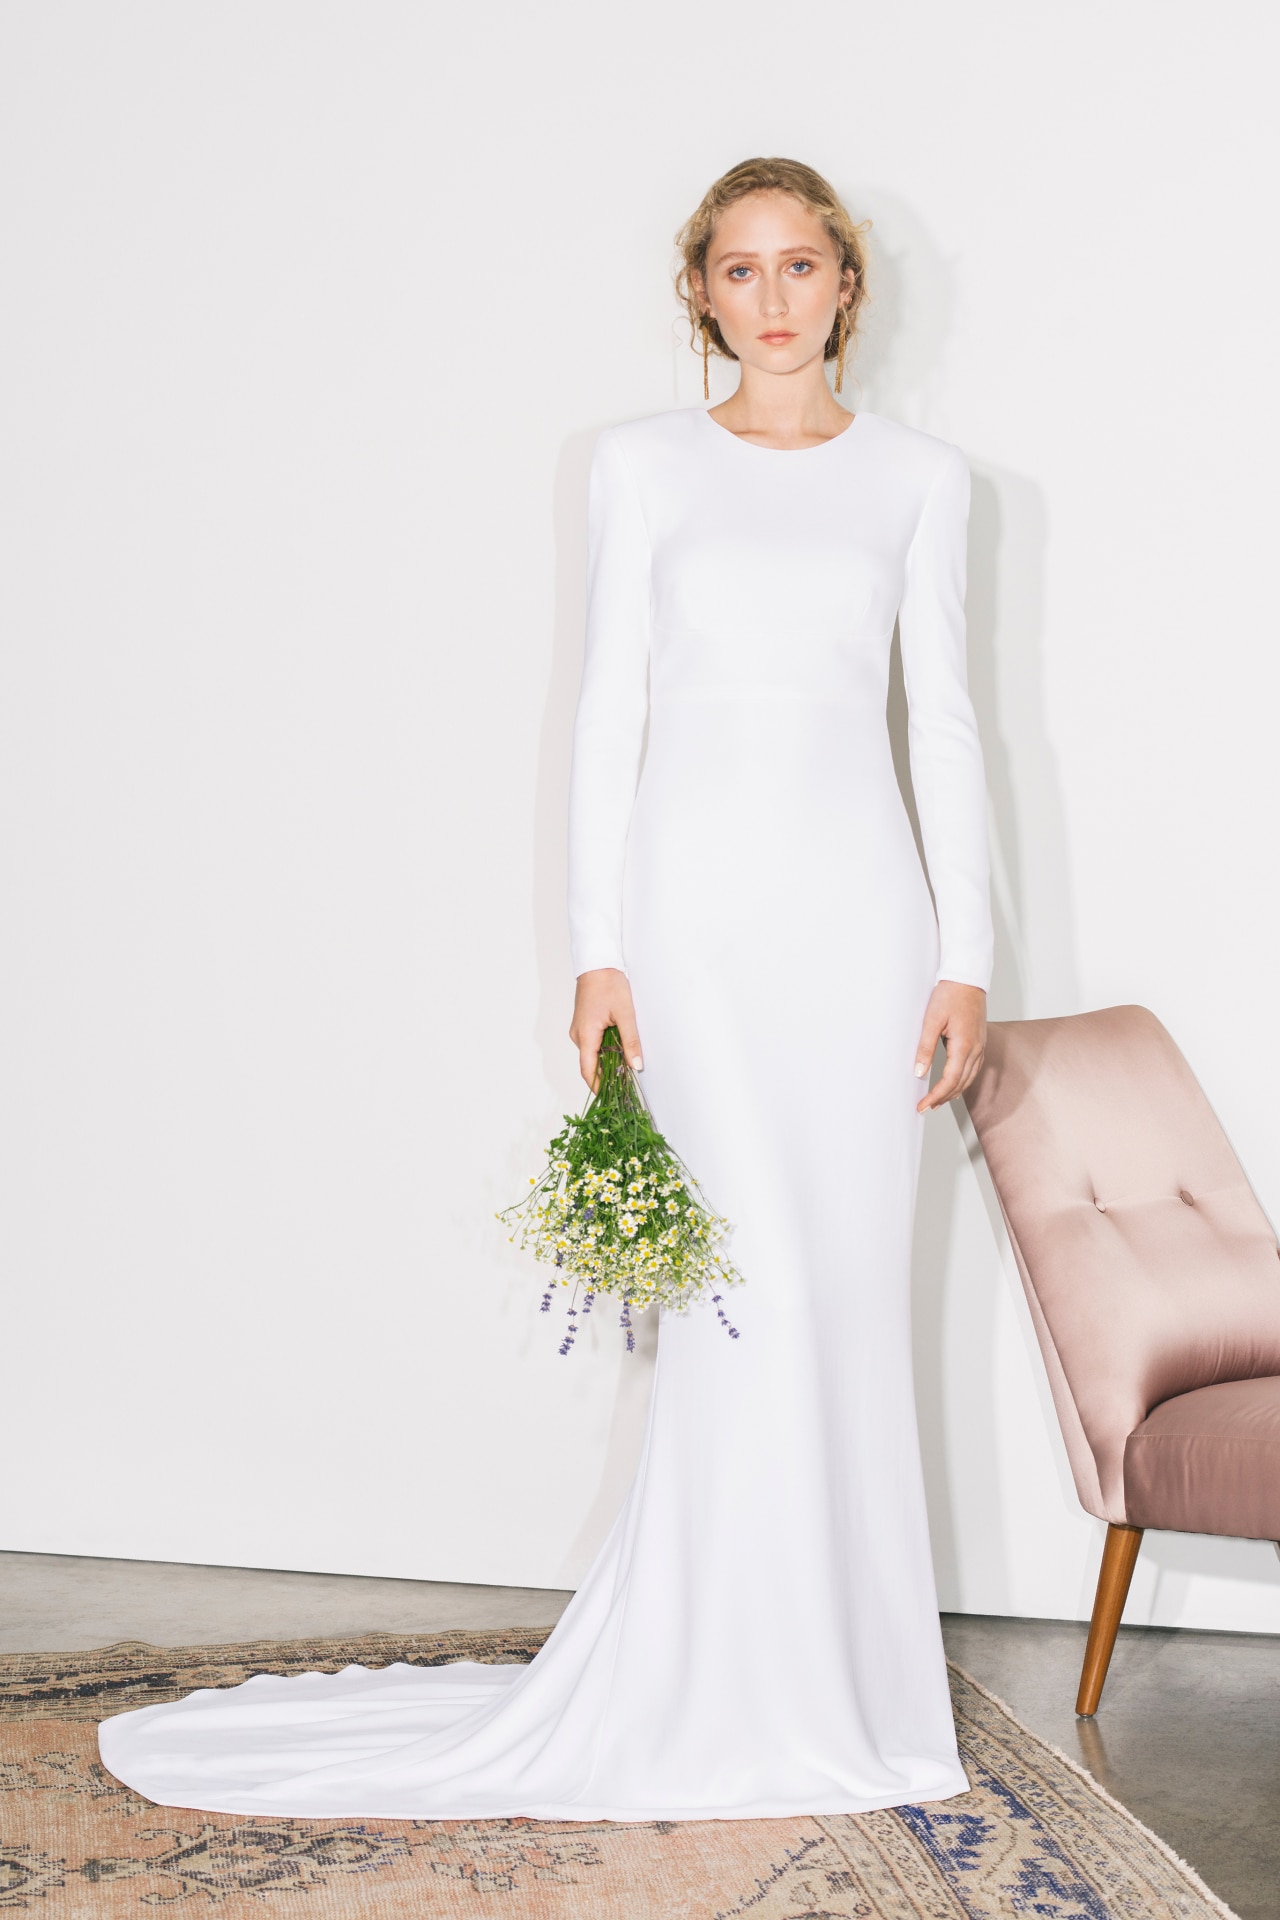 See Stella McCartney's first bridal collection and get ready to channel your inner Meghan Markle